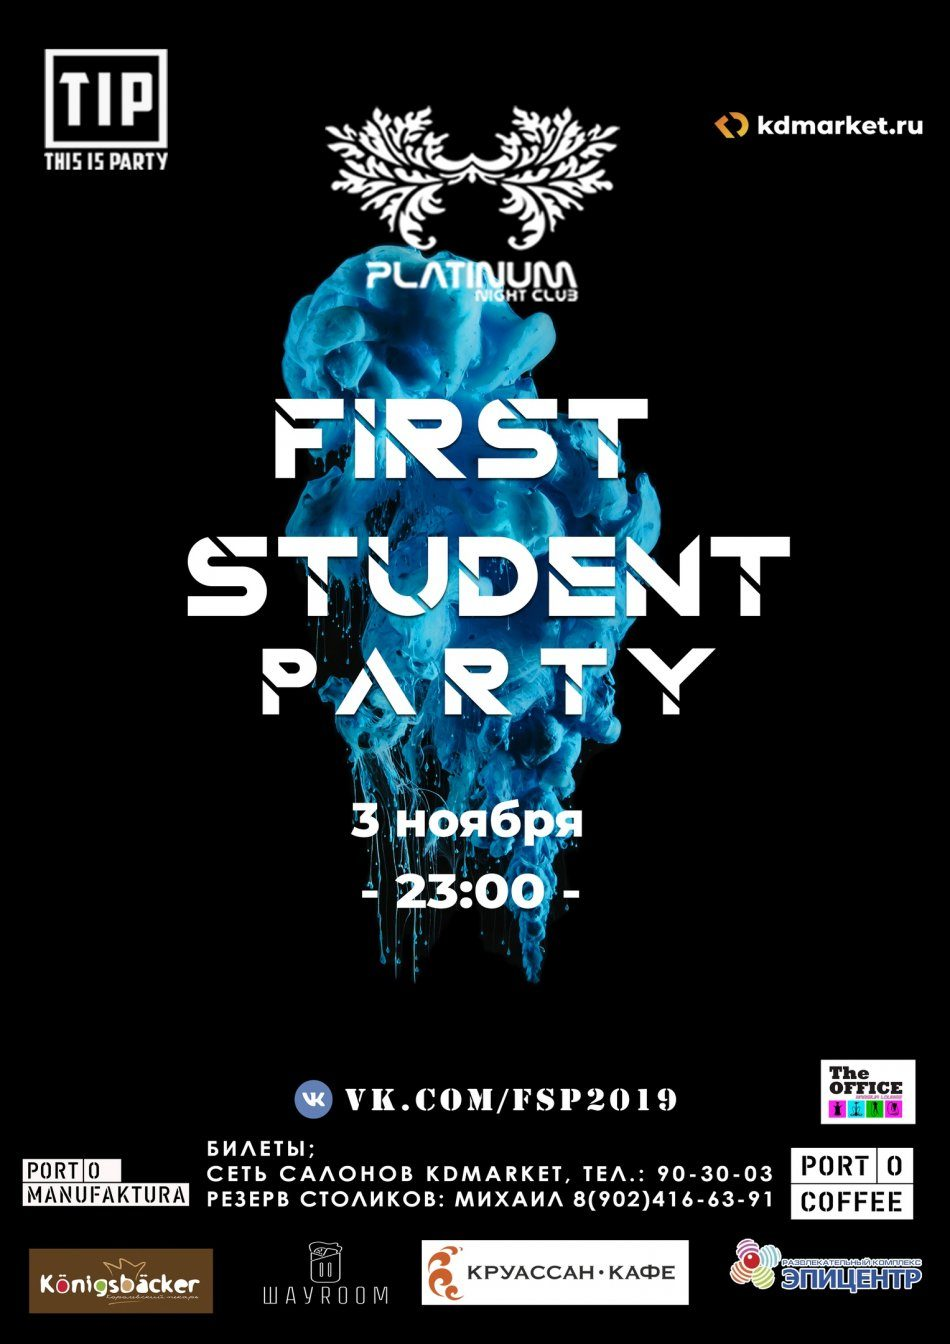 FIRST STUDENT PARTY